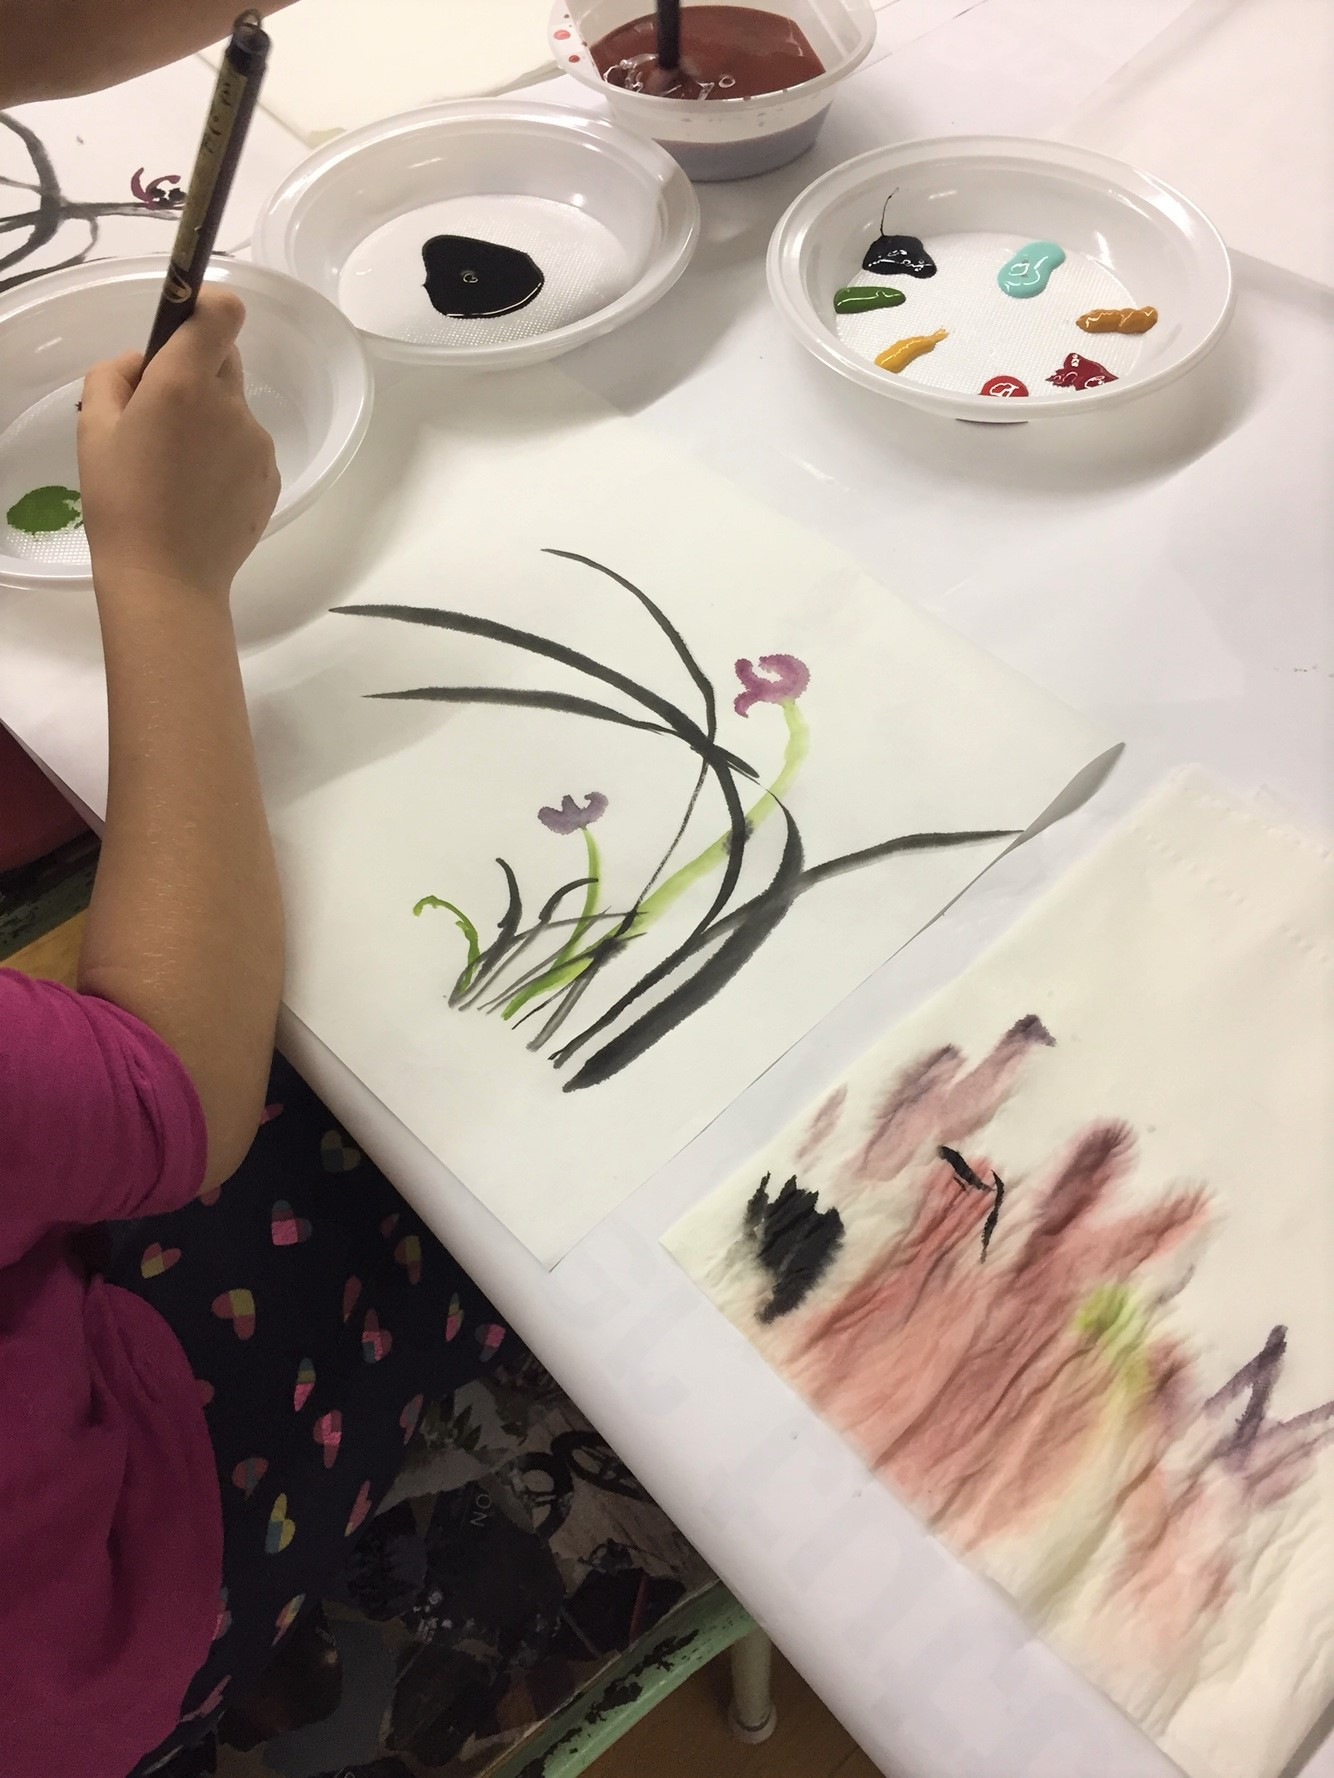 It was amazing to see how they can quickly and creatively paint using new materials.